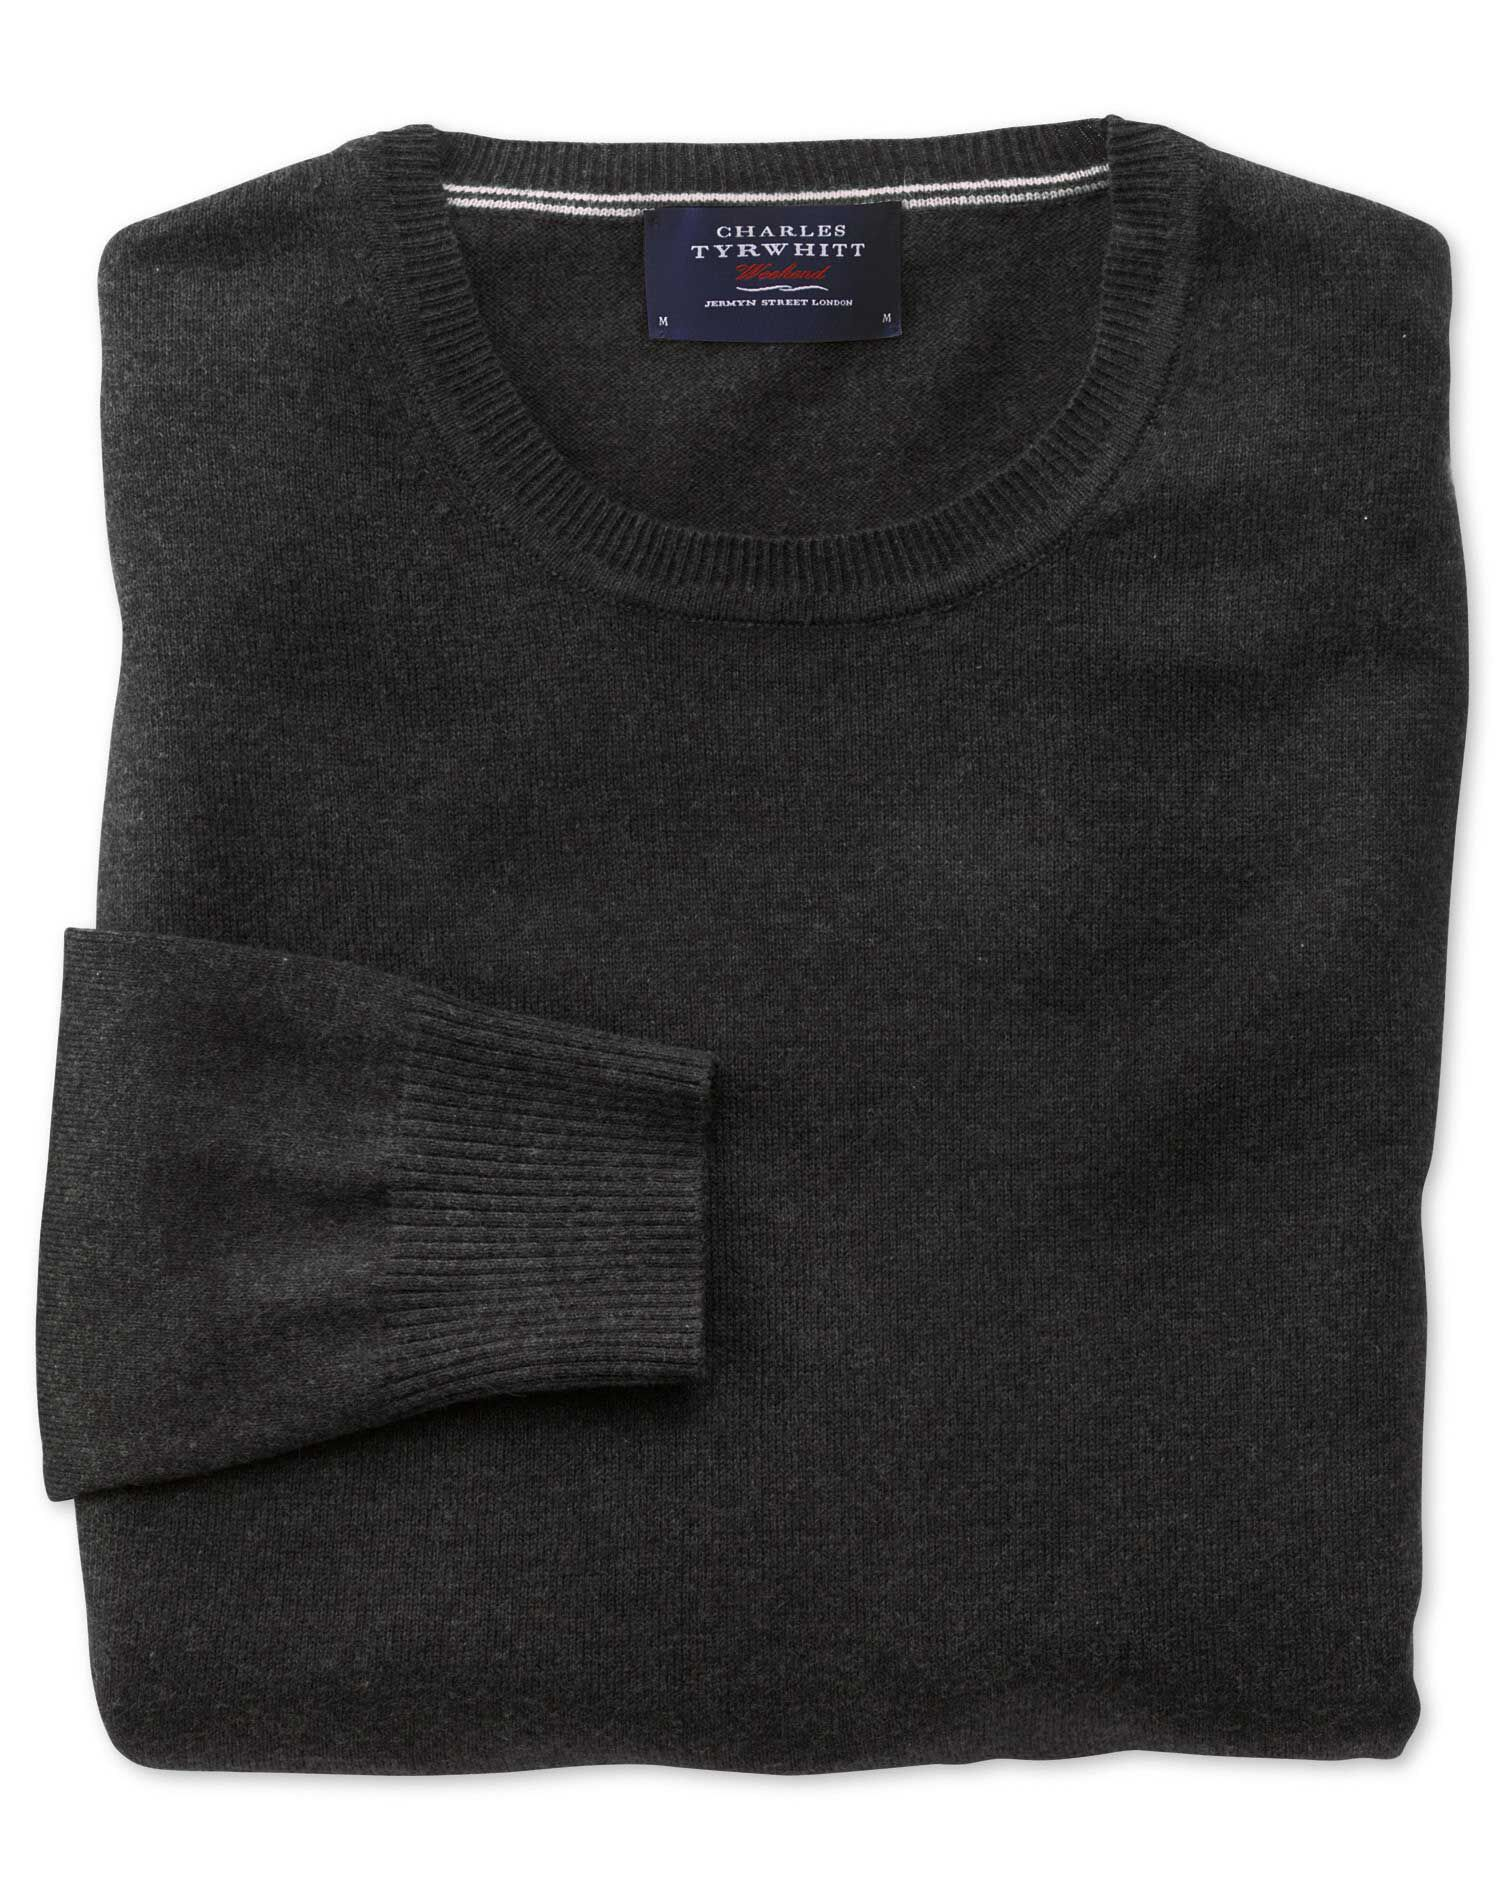 Charcoal Cotton Cashmere Crew Neck Jumper Size Large by Charles Tyrwhitt